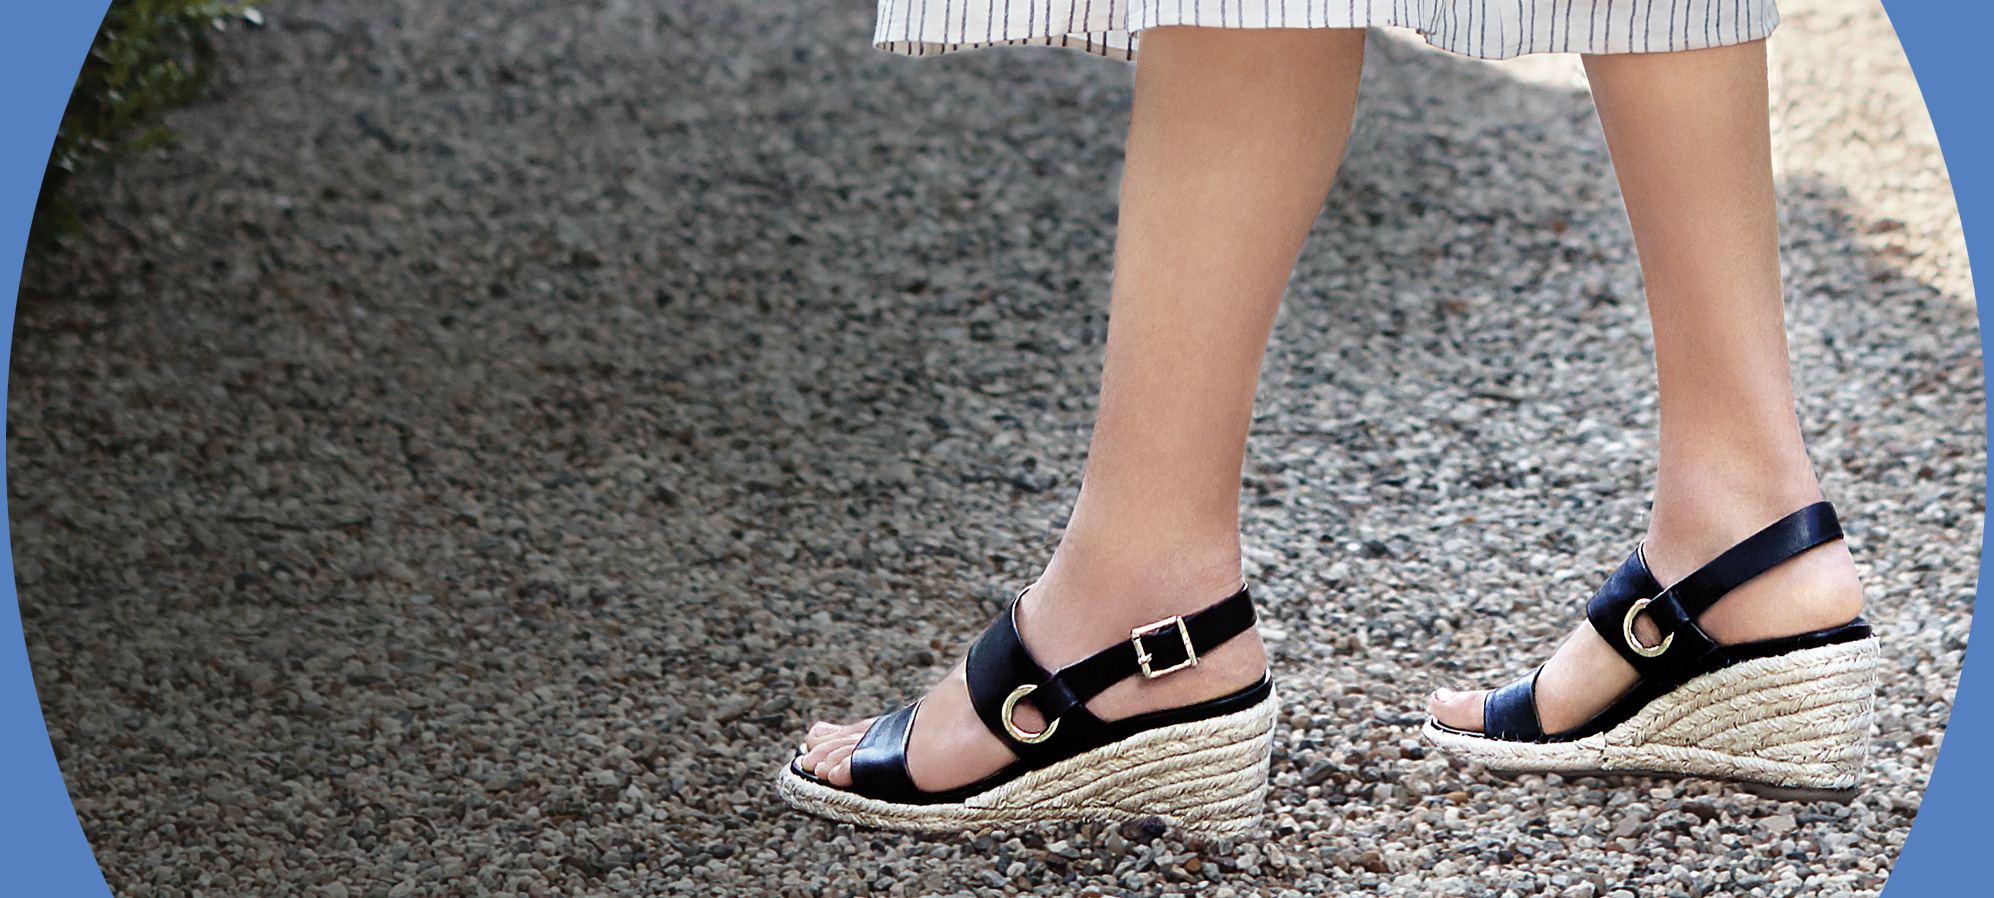 Summer Trend: Espadrilles- Instant refresh of your wardrobe.